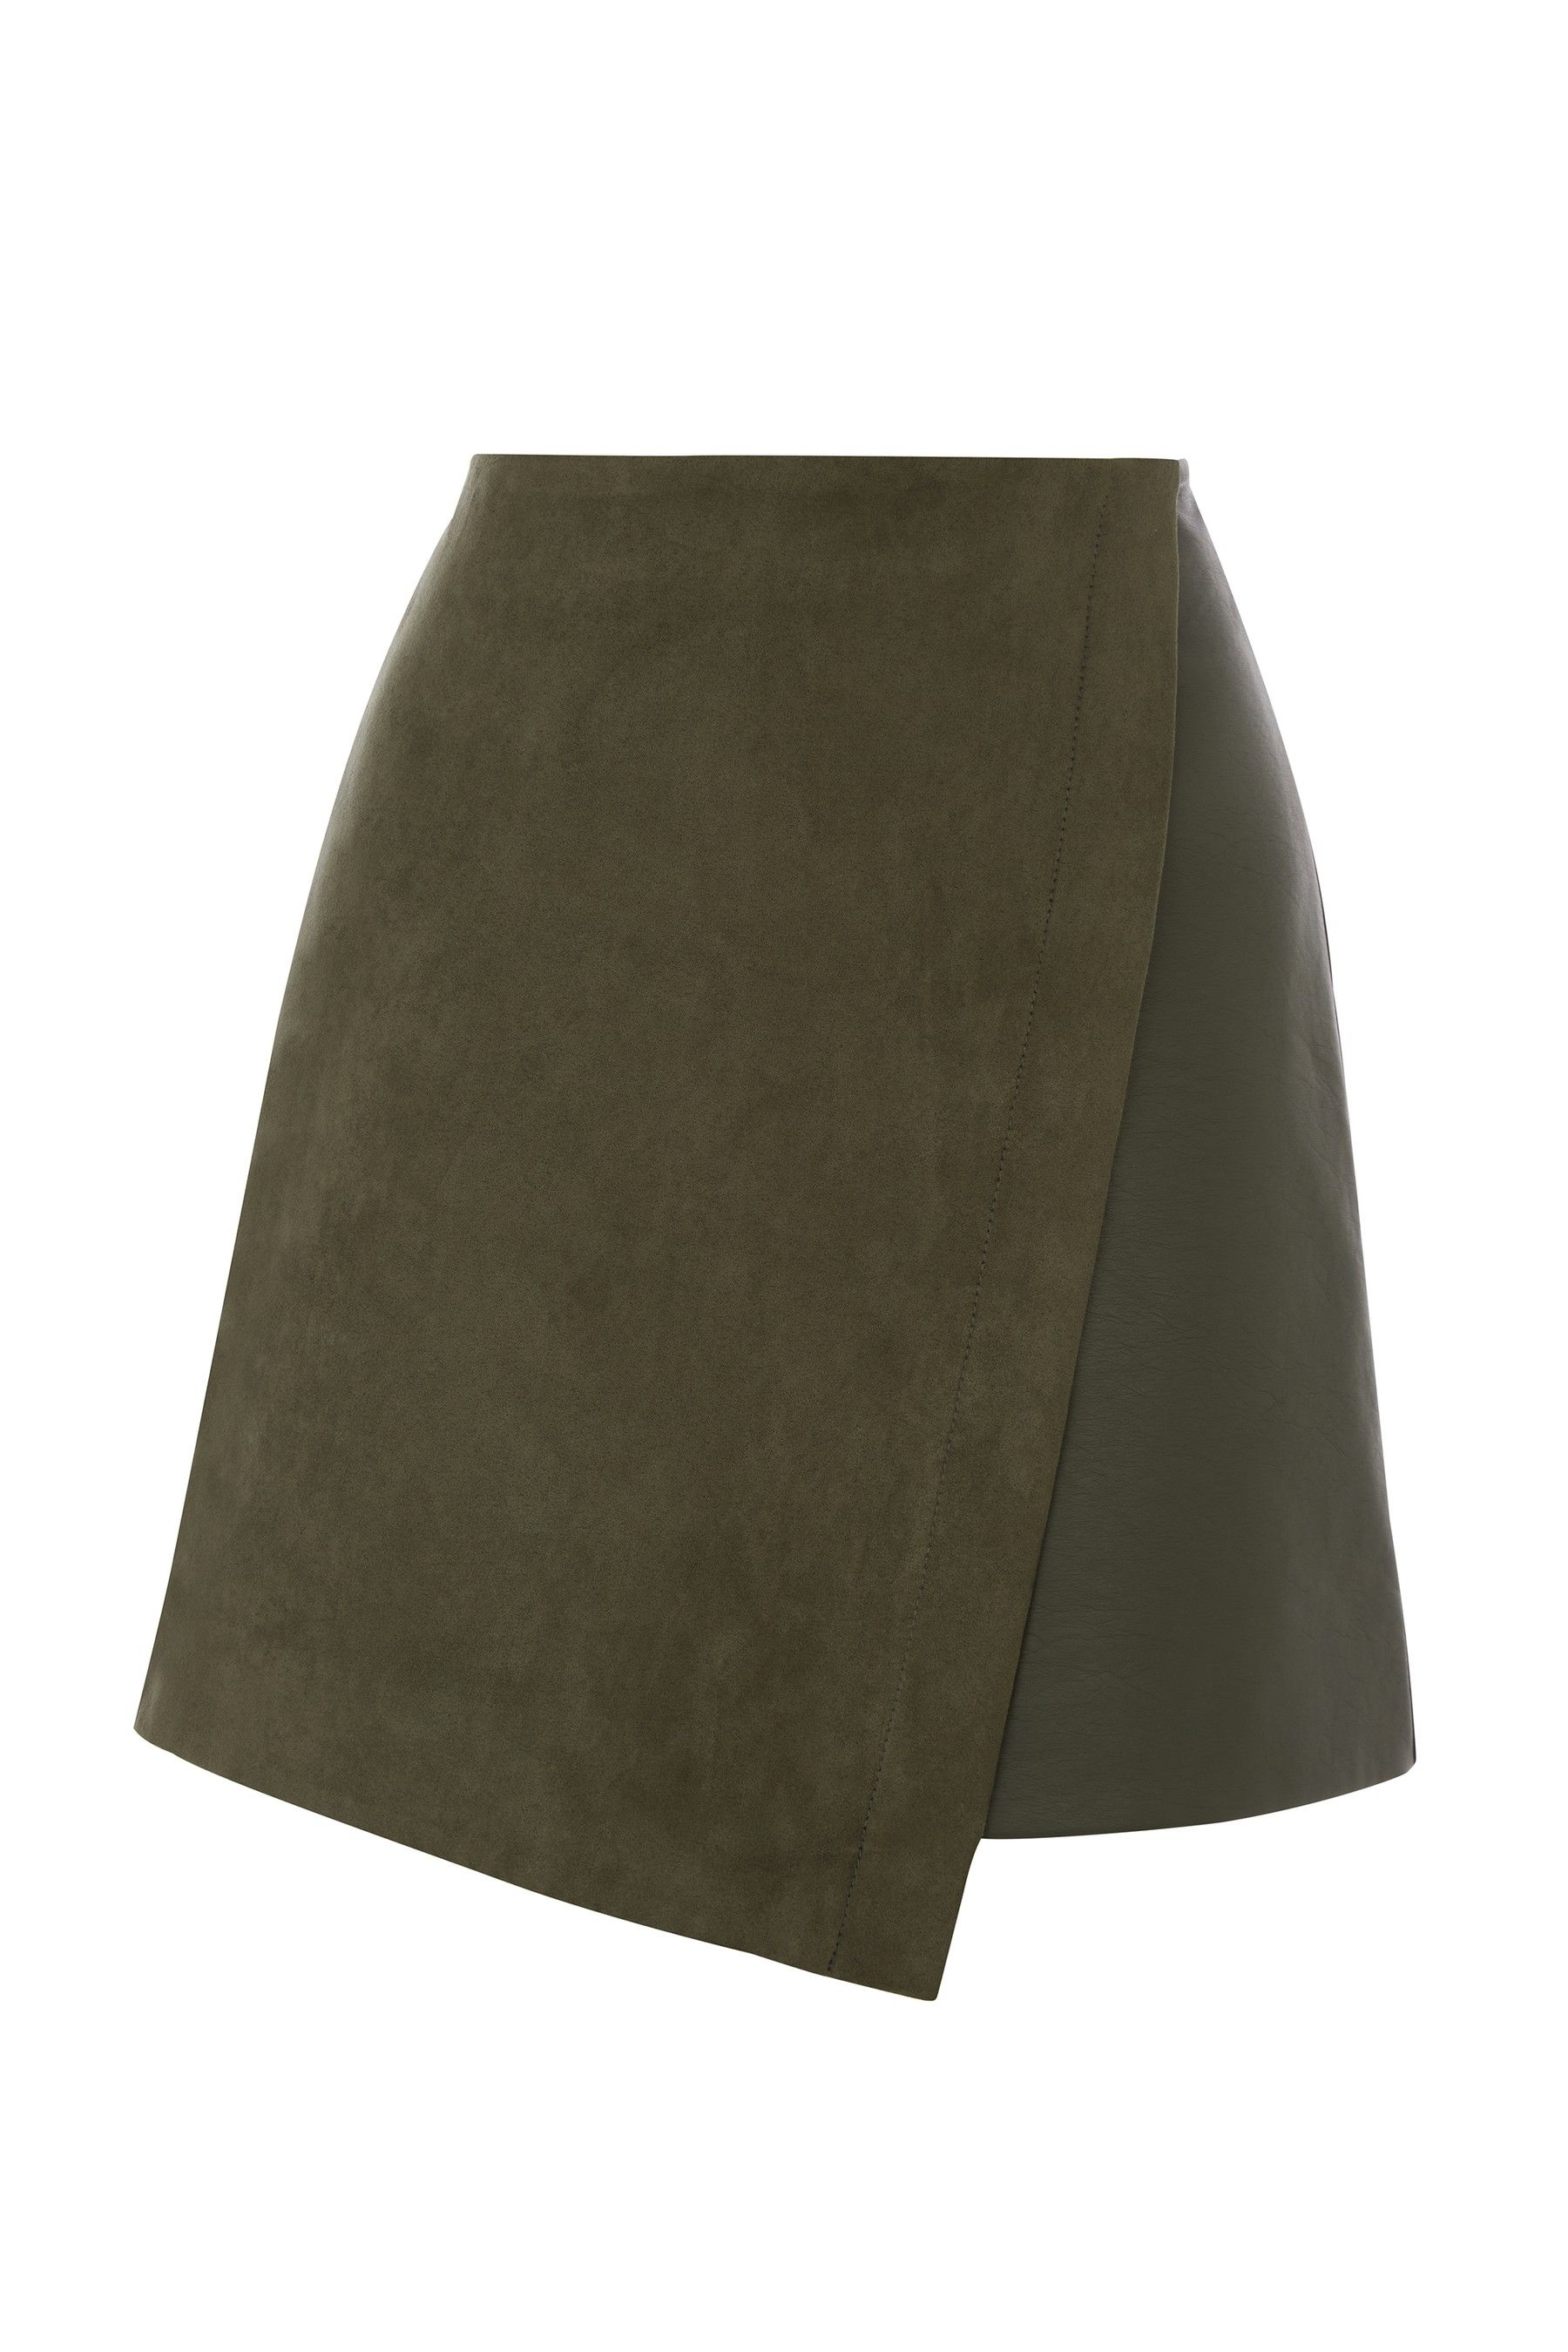 66c27945f Womens Oasis Green Faux Suede Mini Skirt - Green in 2019 | Products ...